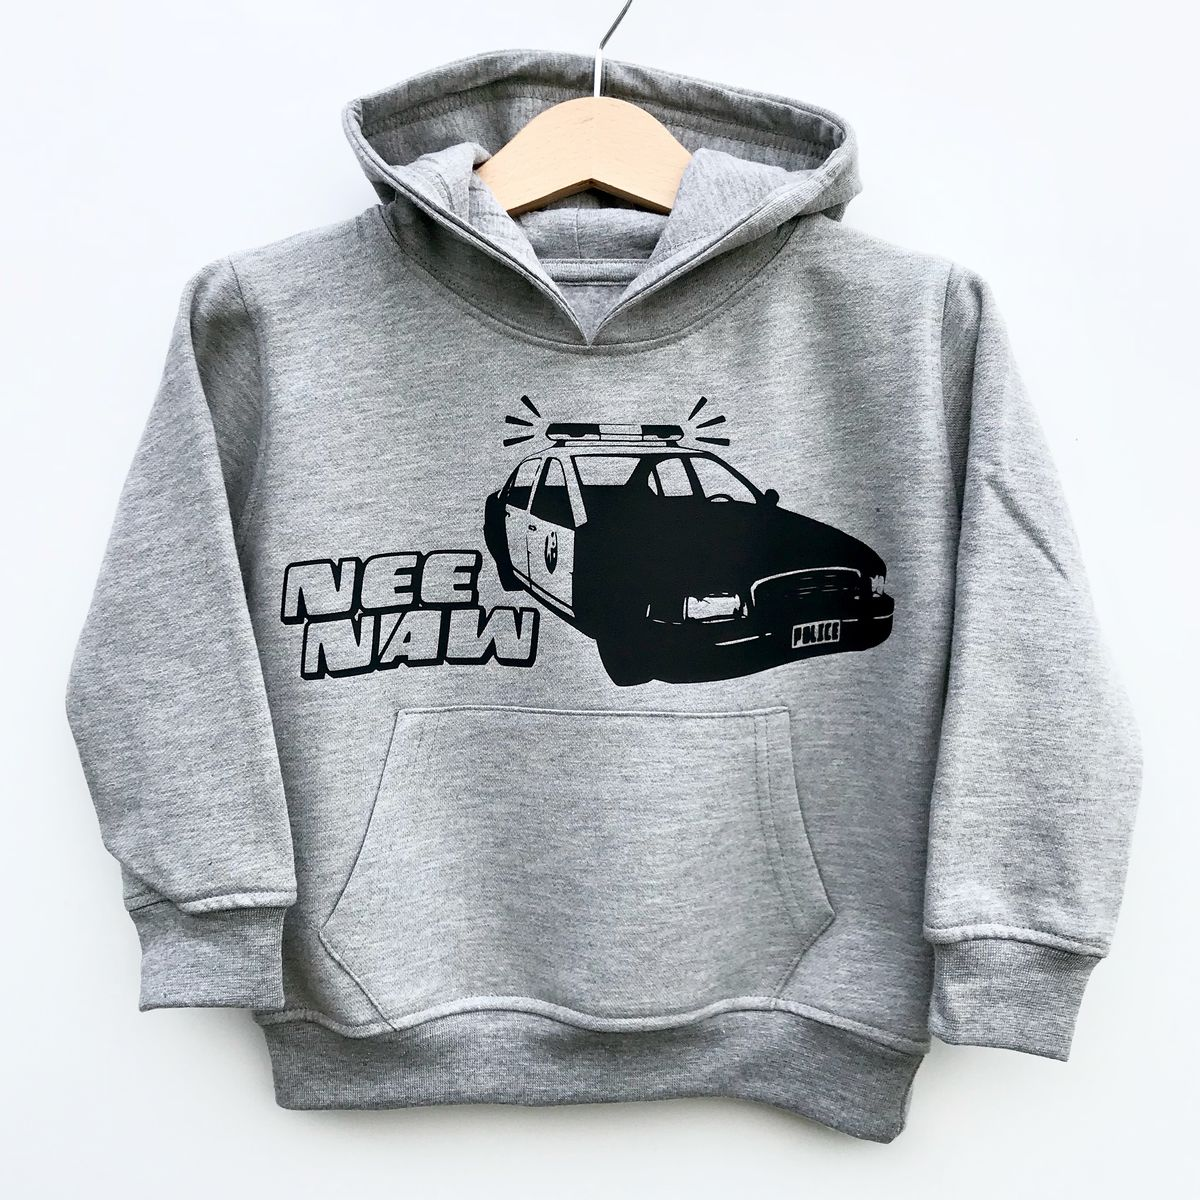 NeeNaw! Police Car Kids Hoodie (Various Sizes) - product images  of